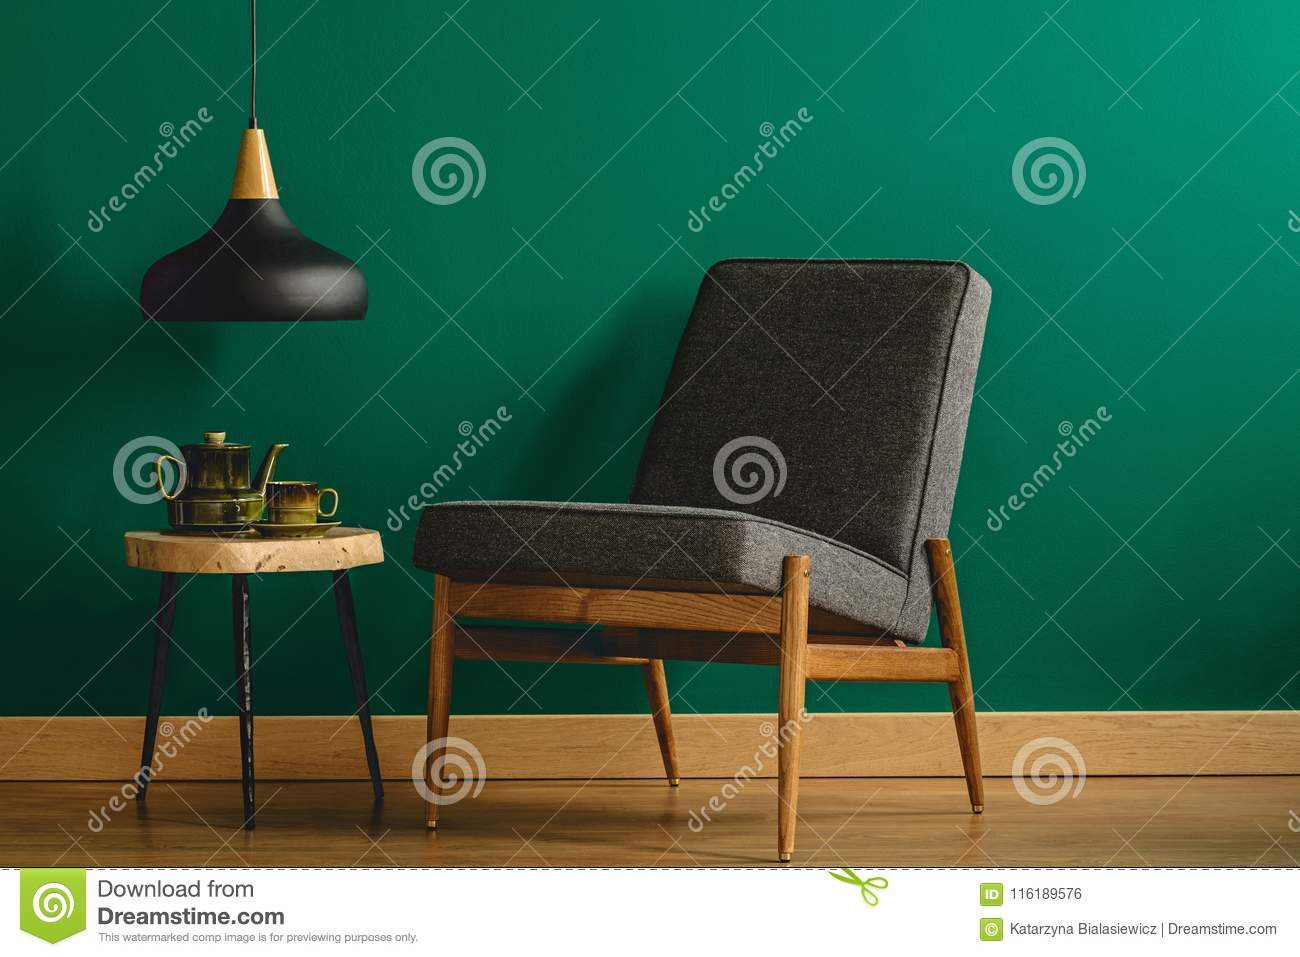 Green Upholstered Chair Upholstered Chair By Green Wall Stock Photo Image Of Decor